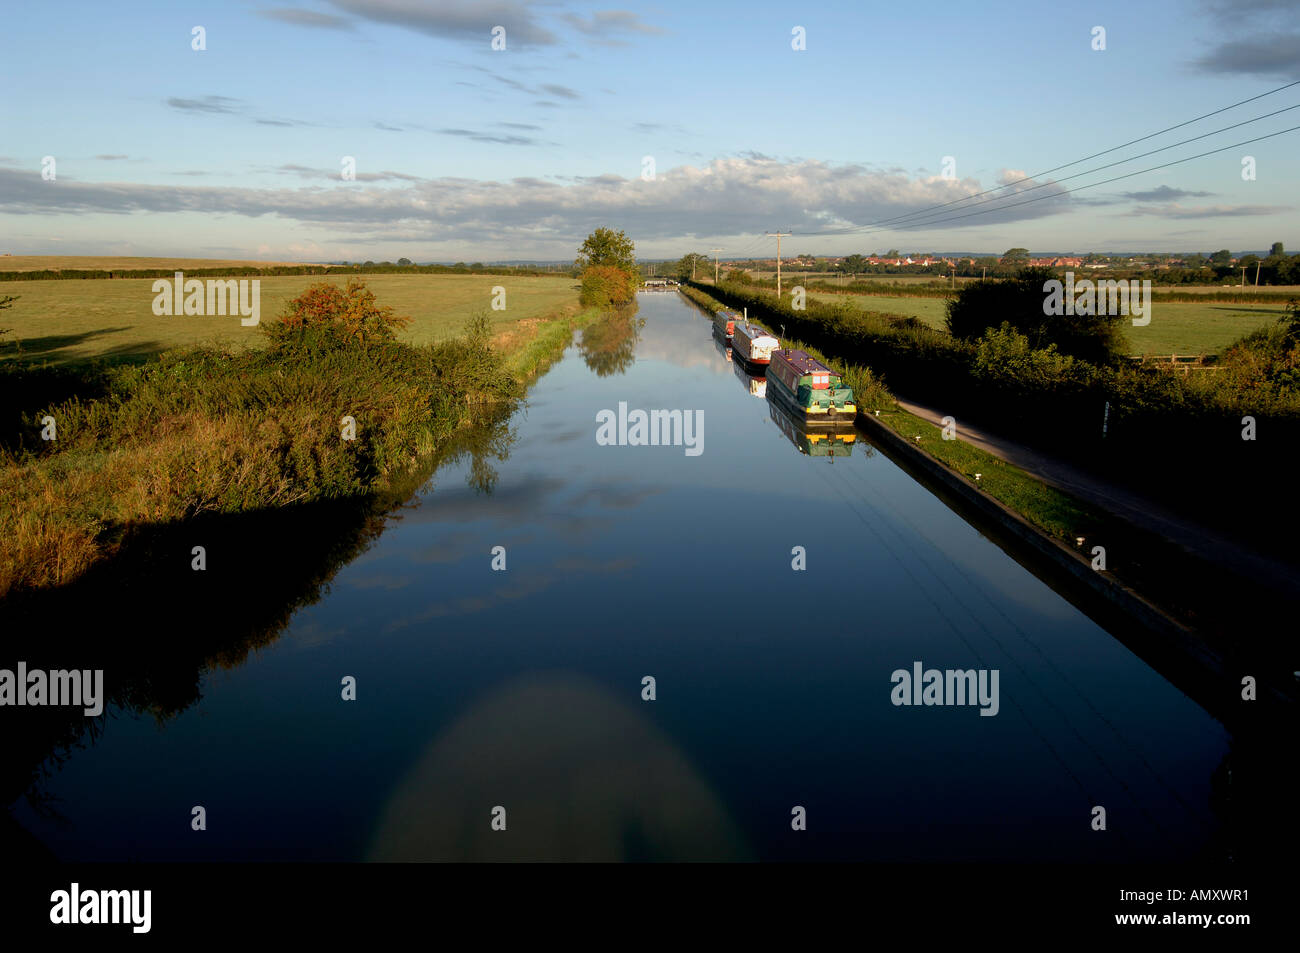 The canal stretches away at dawn near Bradford on Avon - Stock Image